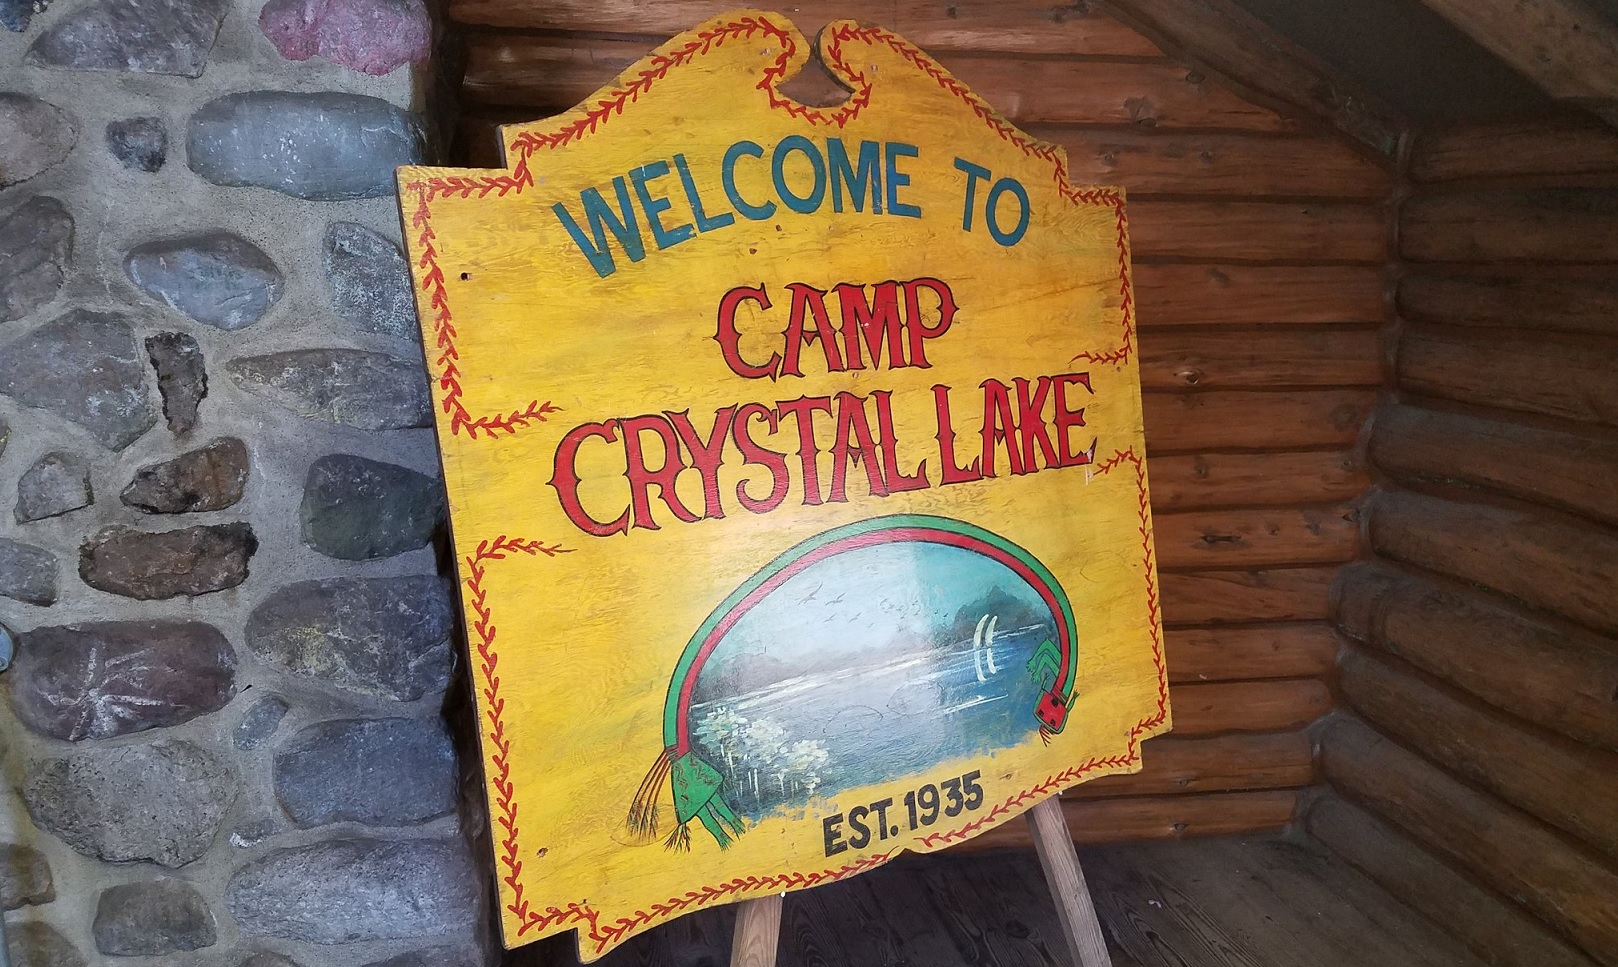 We Spent Friday The 13th At The Real Camp Crystal Lake In New Jersey Bloody Disgusting